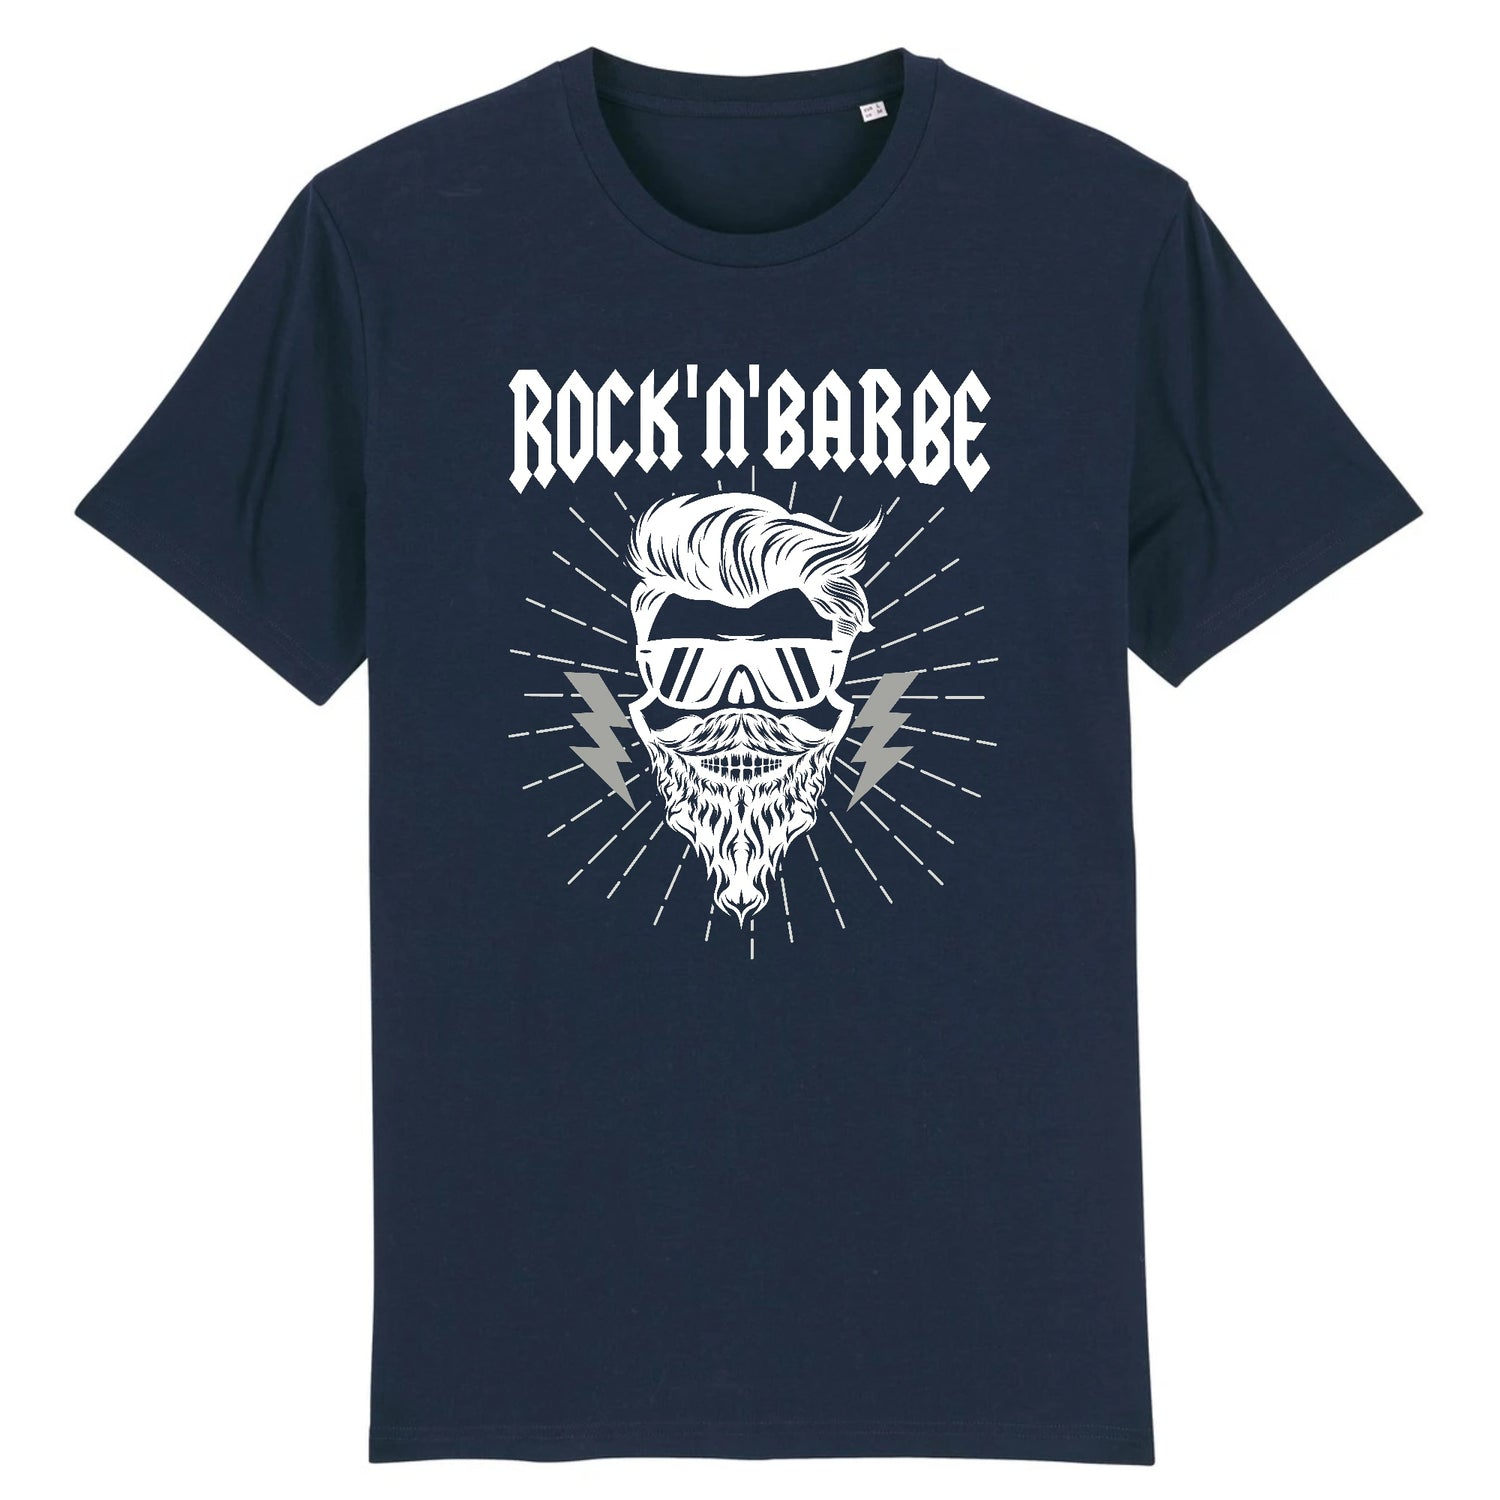 T-Shirt Barbe Rock'n'Barbe Marine